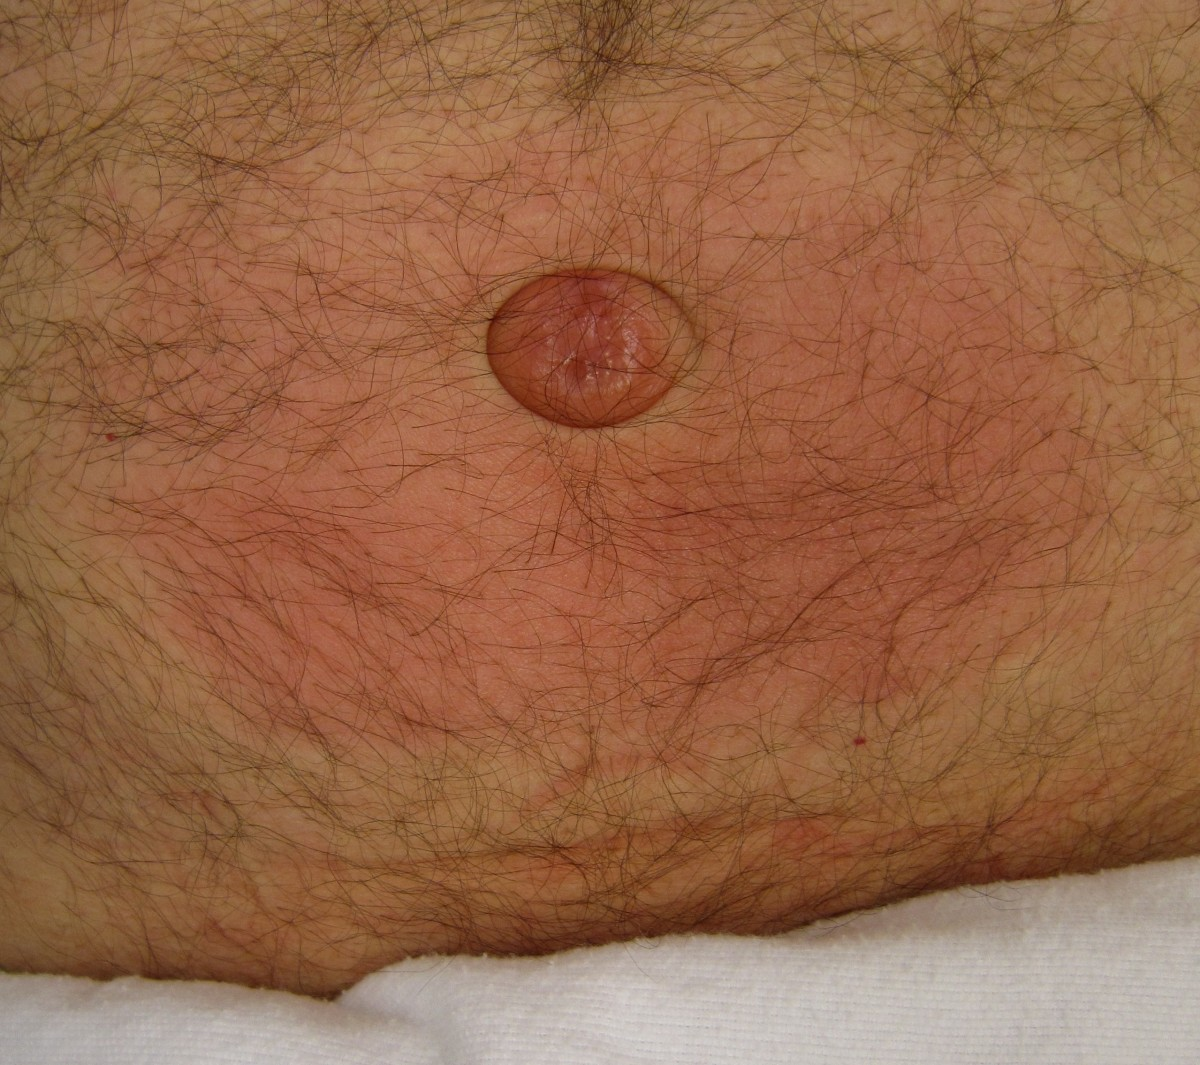 What an Umbilical Hernia Is and What to Do About It